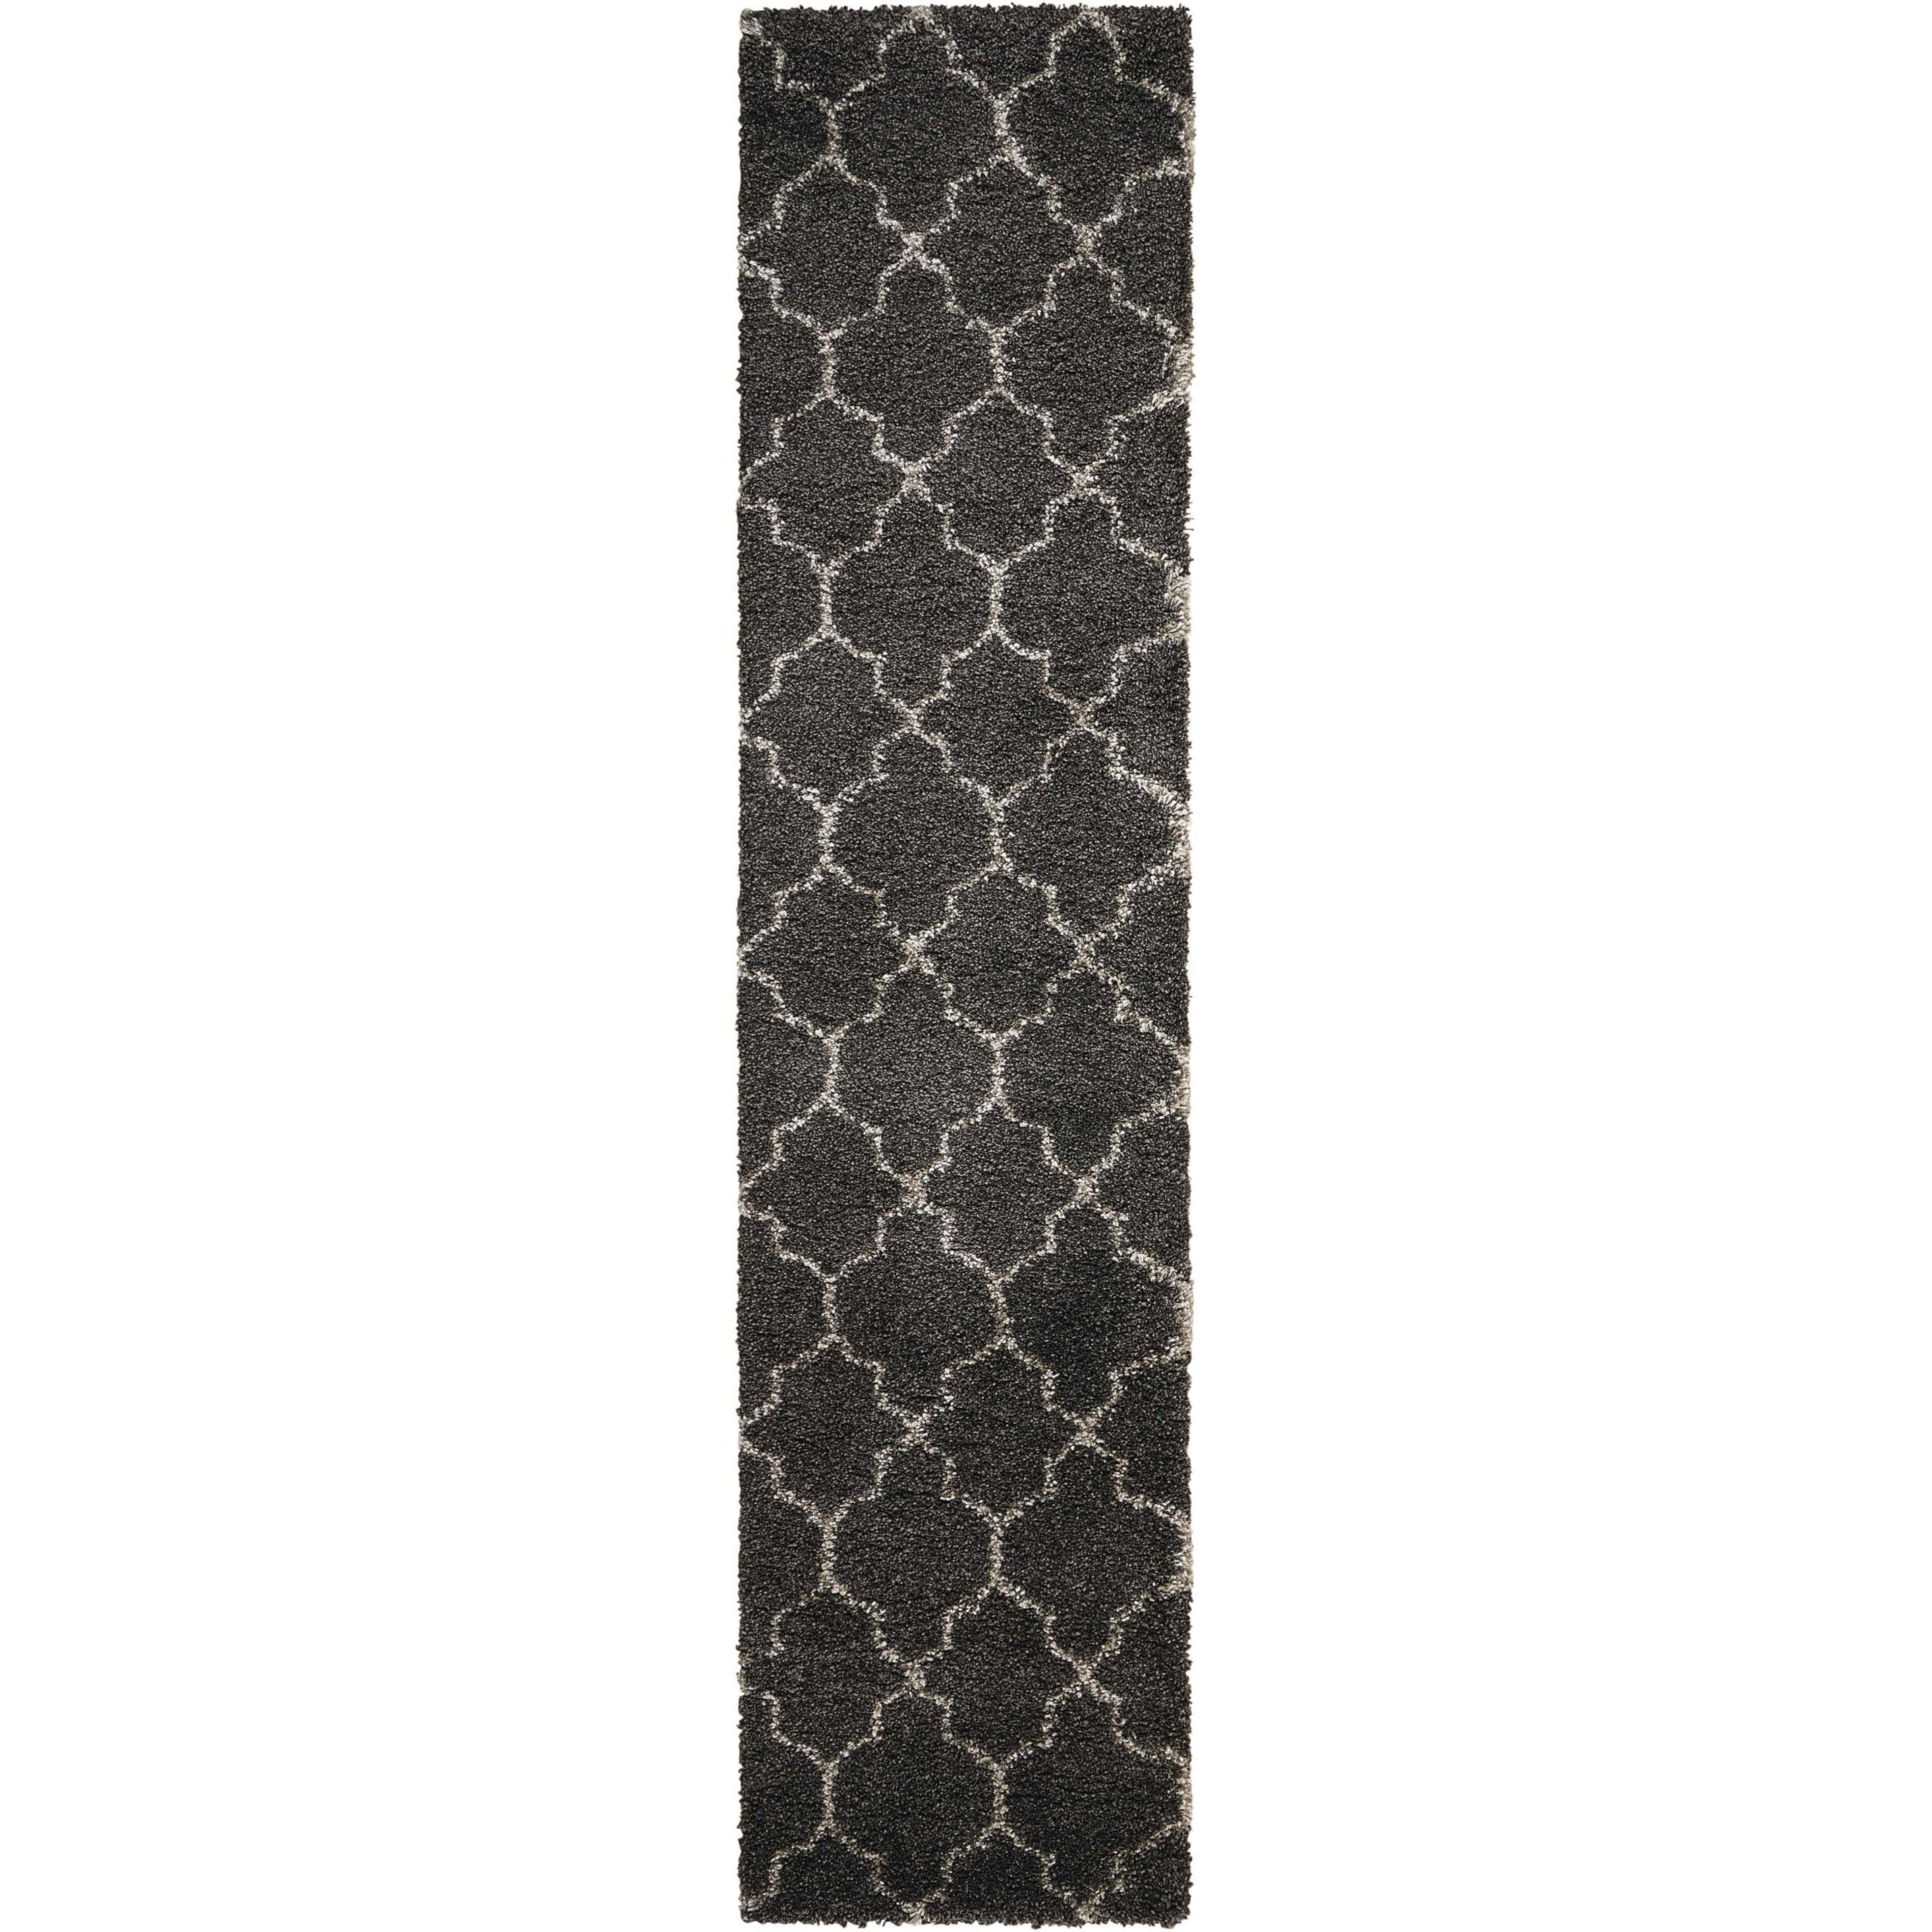 "Amore 2'2"" x 10' Charcoal Runner Rug by Nourison at Home Collections Furniture"